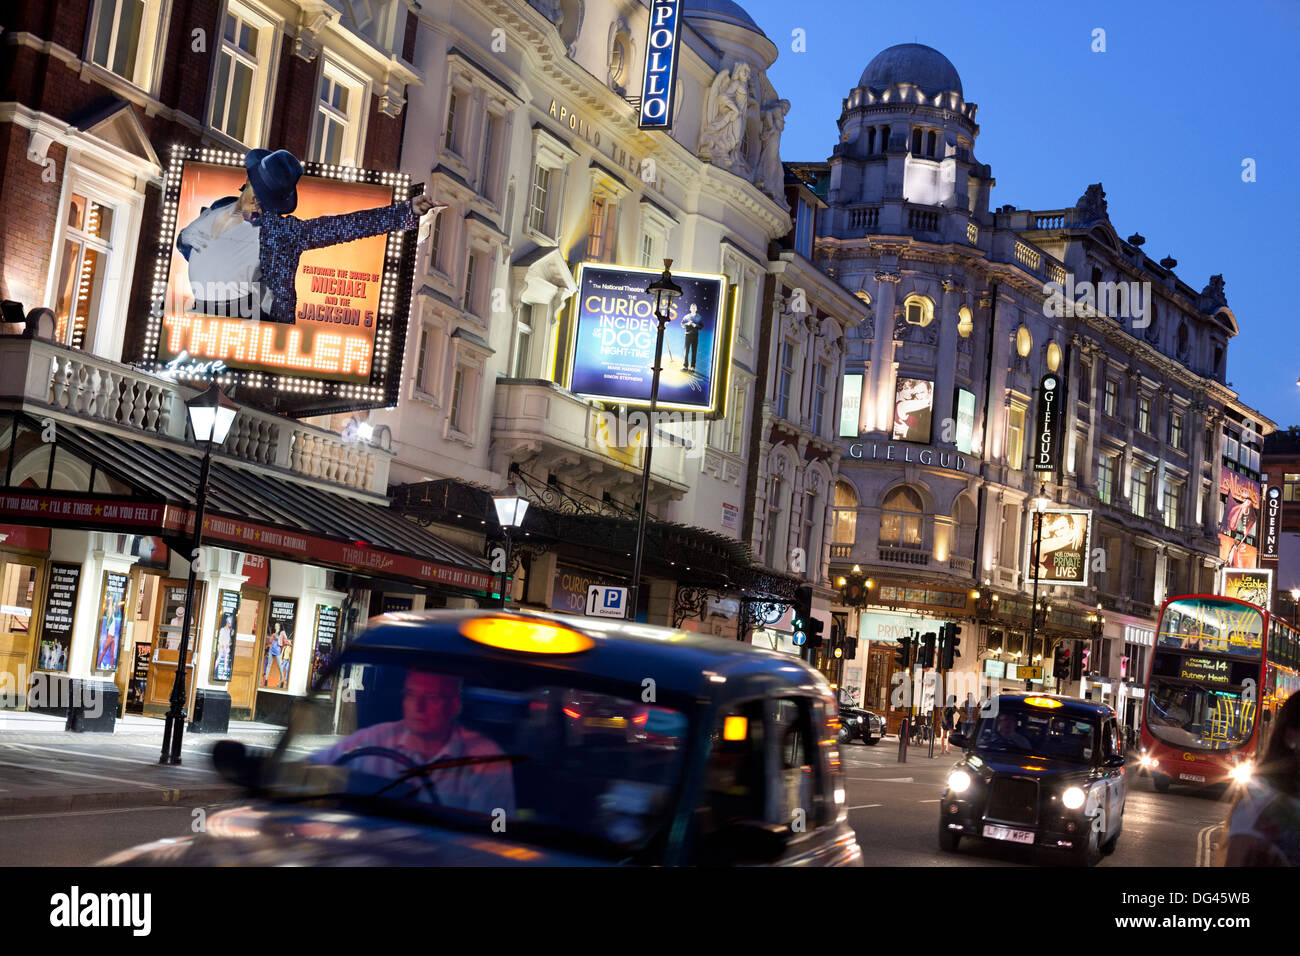 Theatres at night, Shaftesbury Avenue, London, England, United Kingdom, Europe - Stock Image